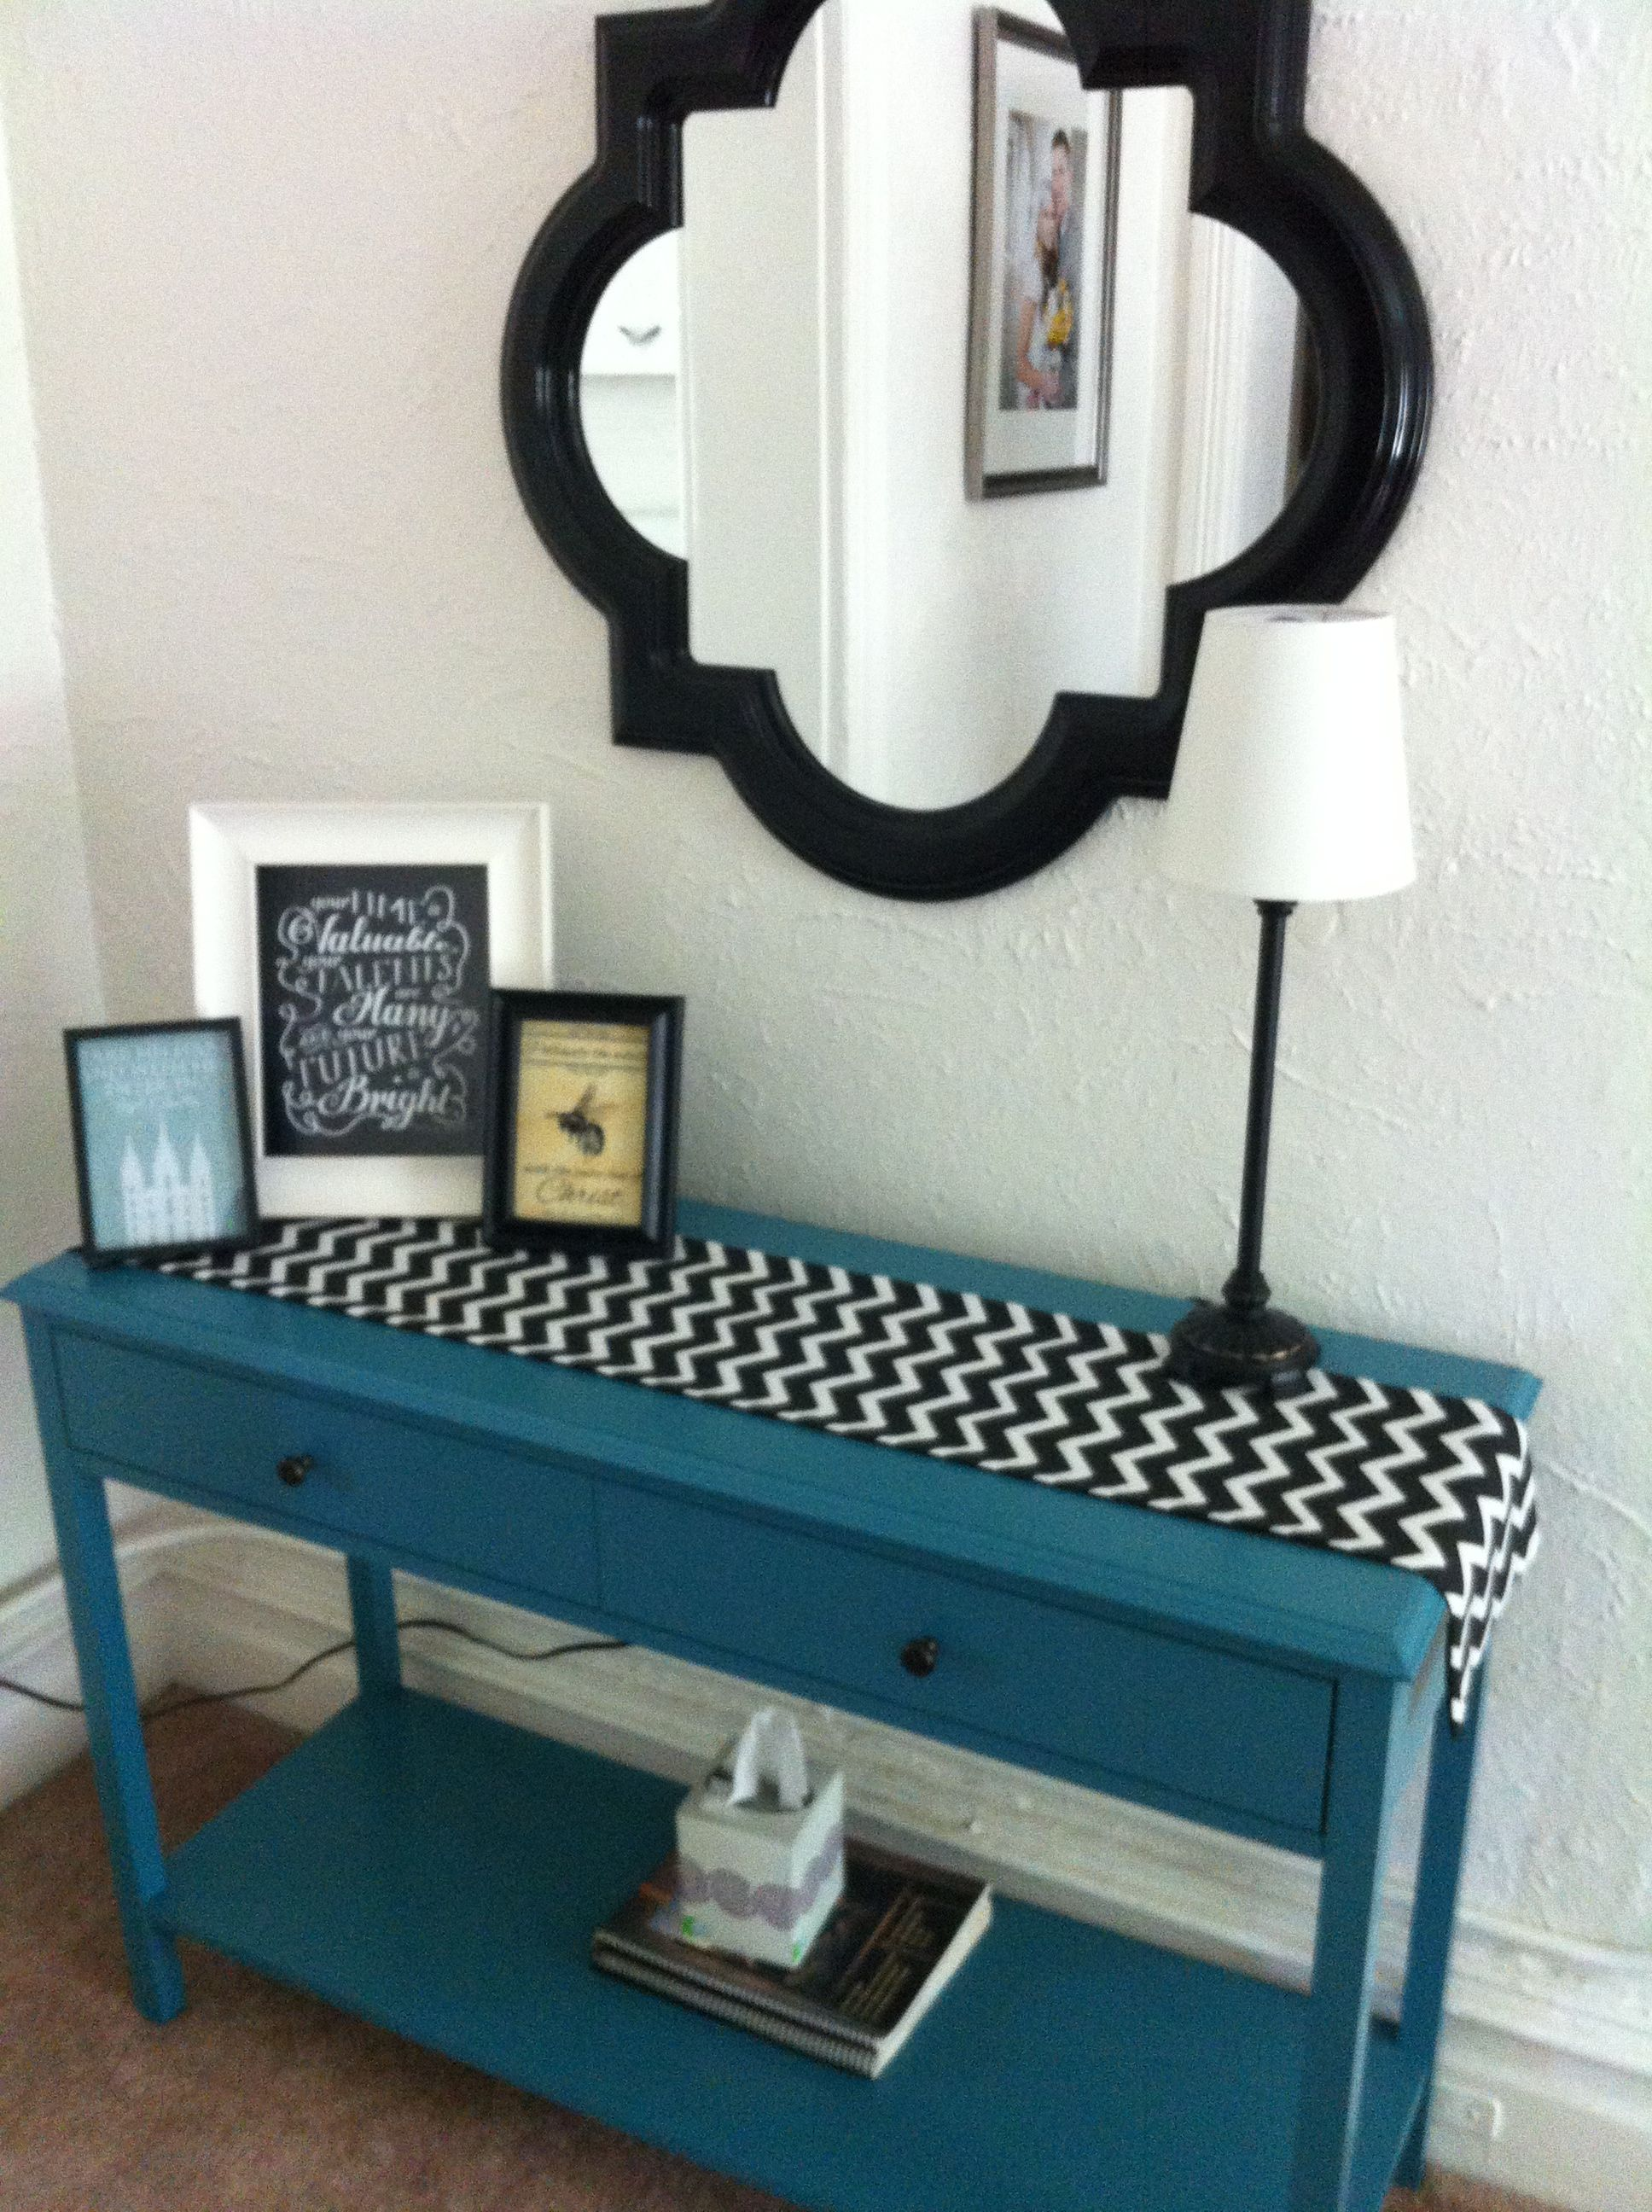 Hall Table Cheap Home Decor My Creations Pinterest: pinterest home decor hall